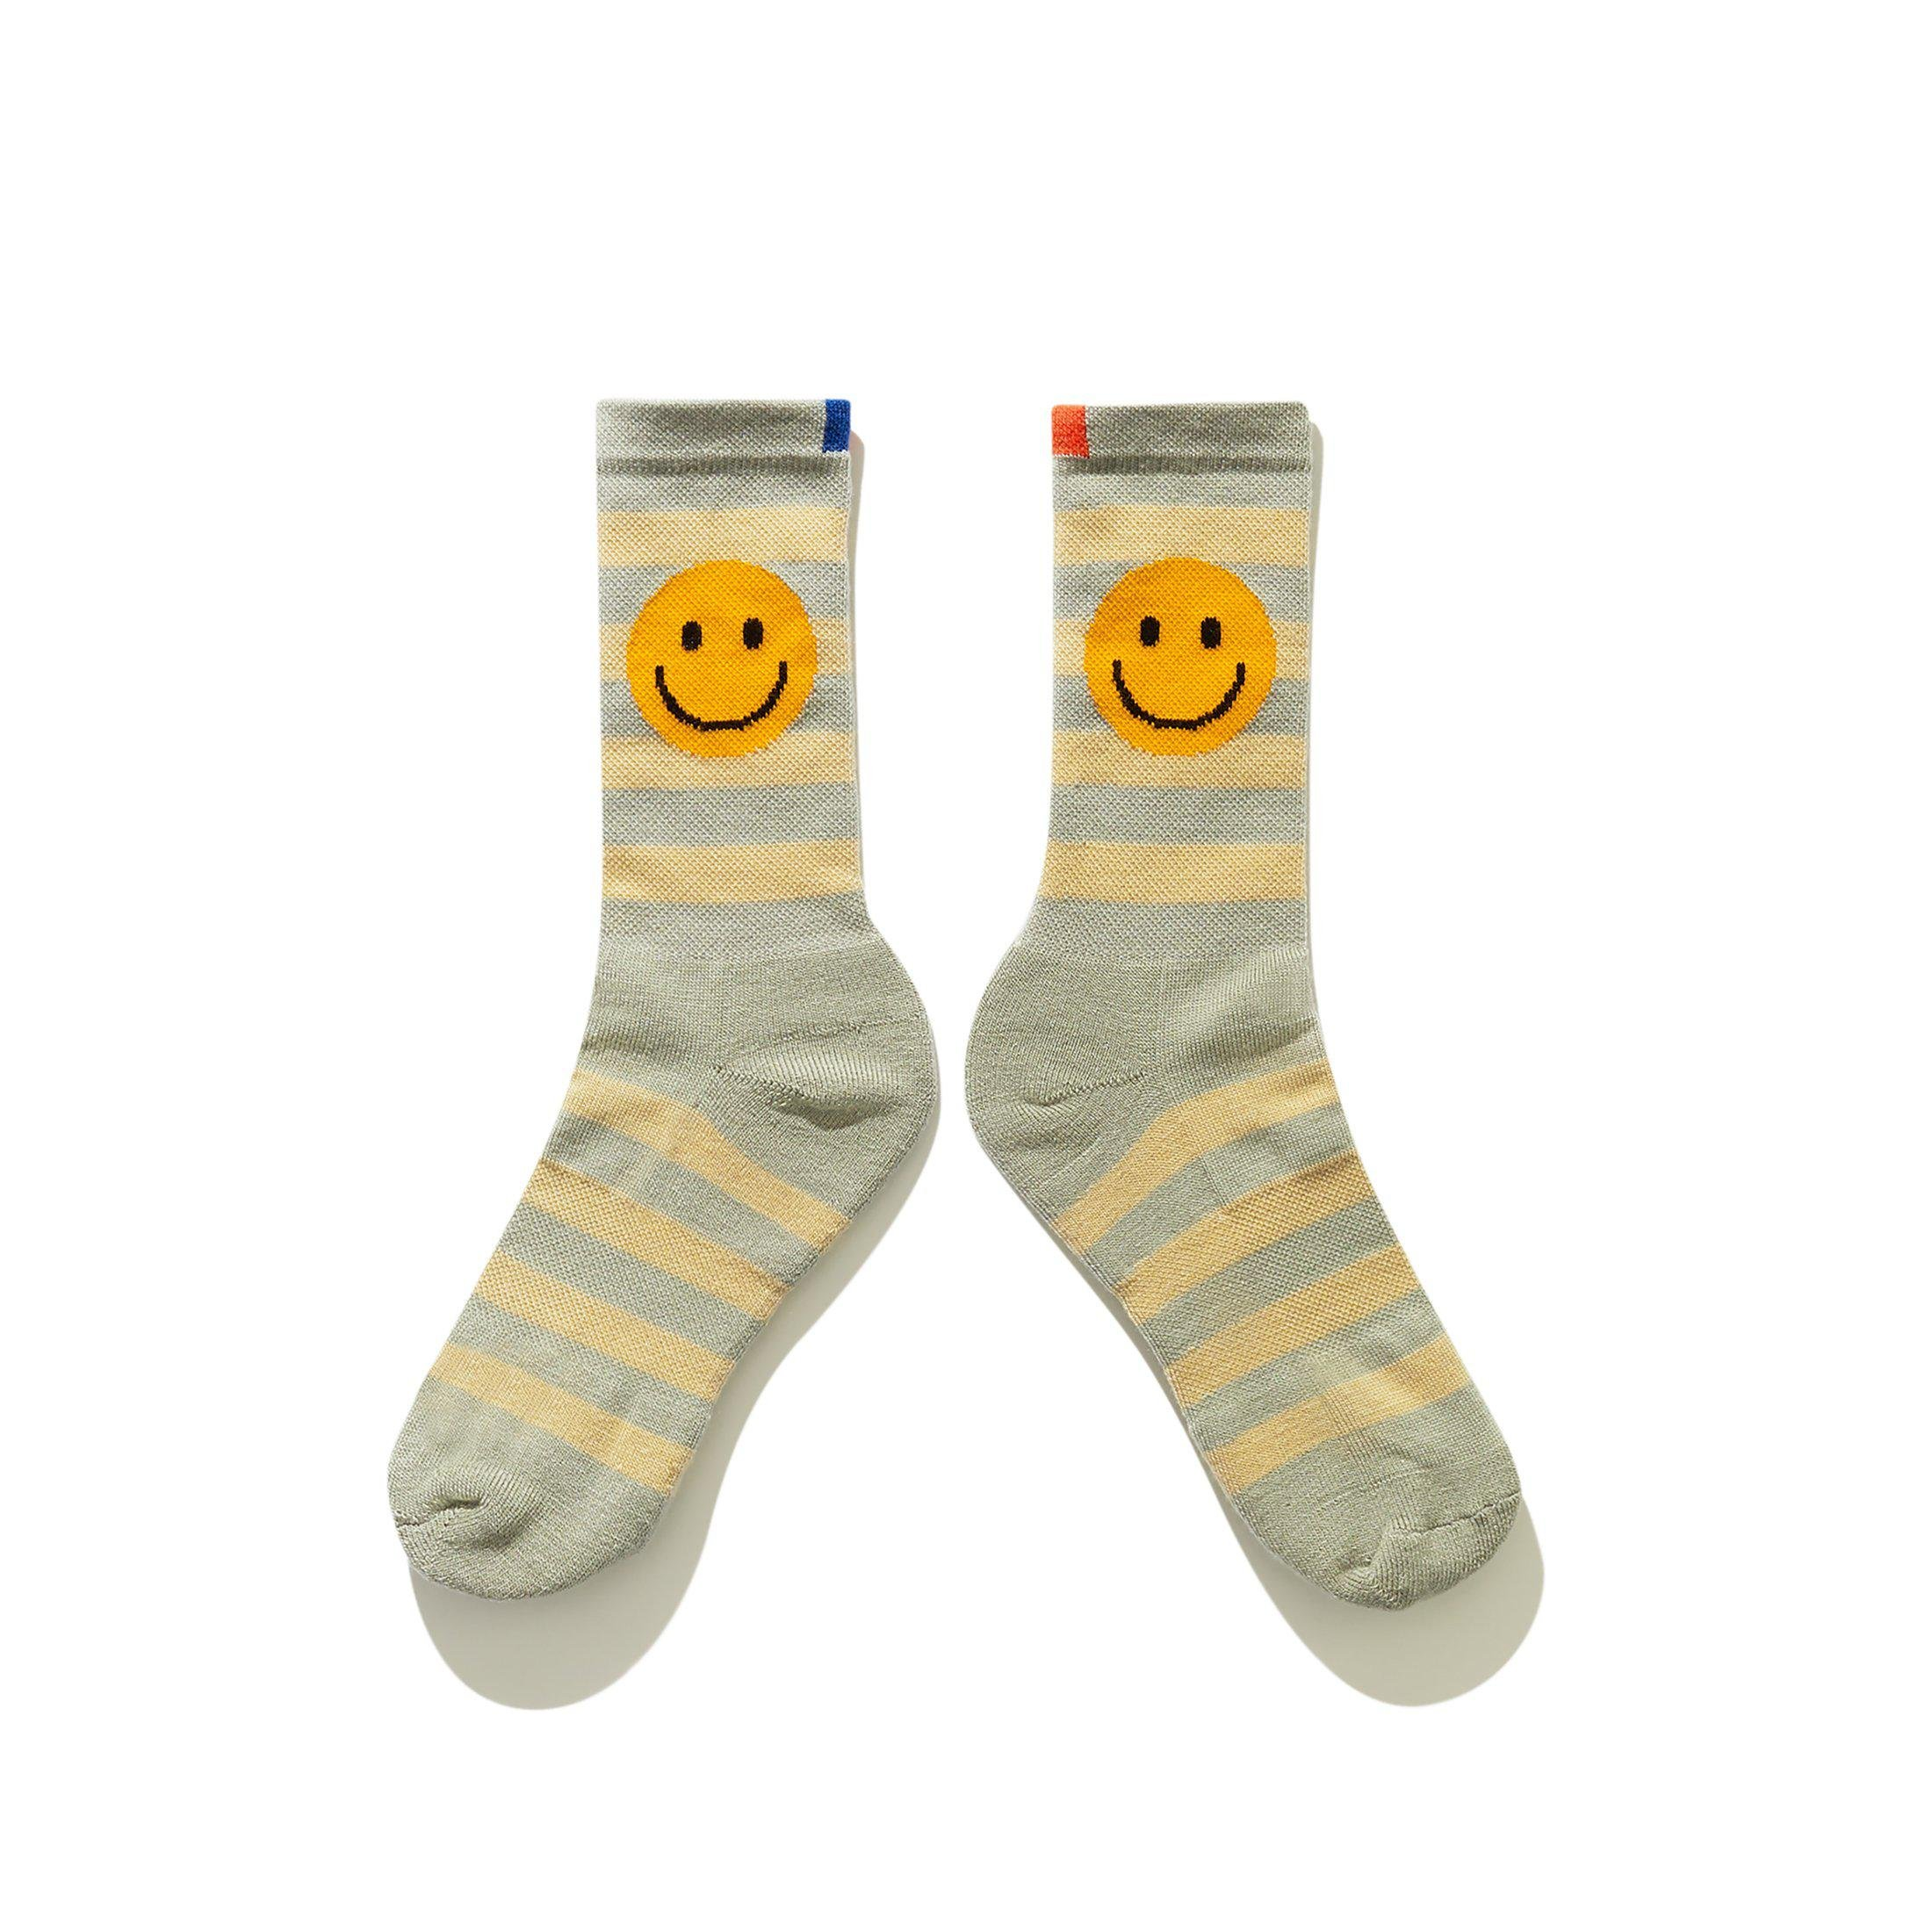 The Women's Rugby Smile Sock - Grey/Beige